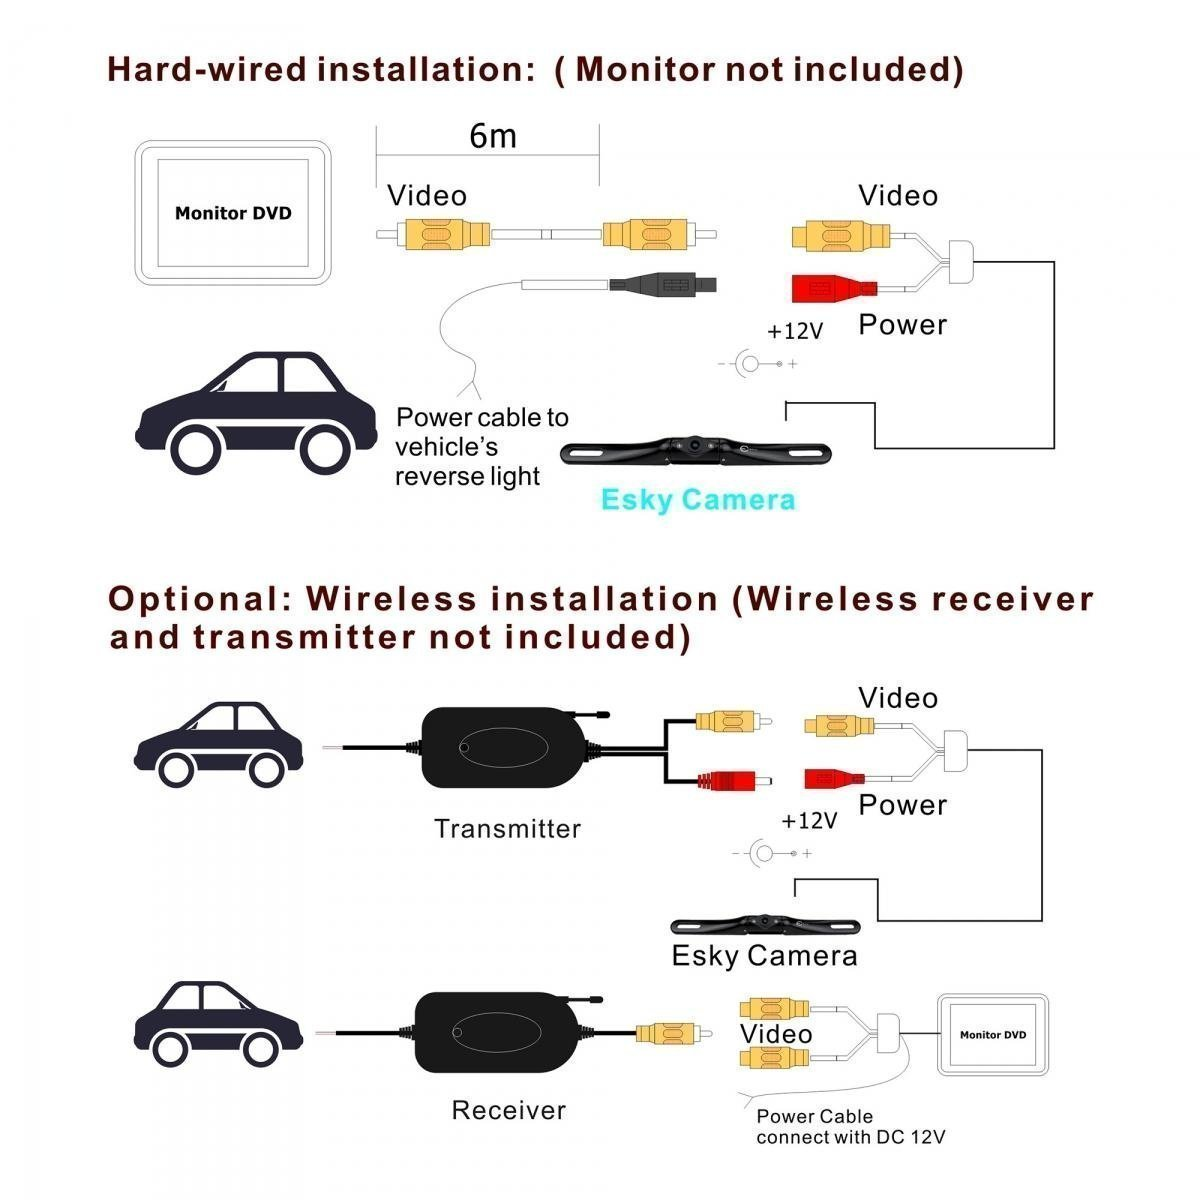 Camera Wiring Schematic Swann Security Diagram Vision On Car Reversing Backup Image Tft Wireless Auto